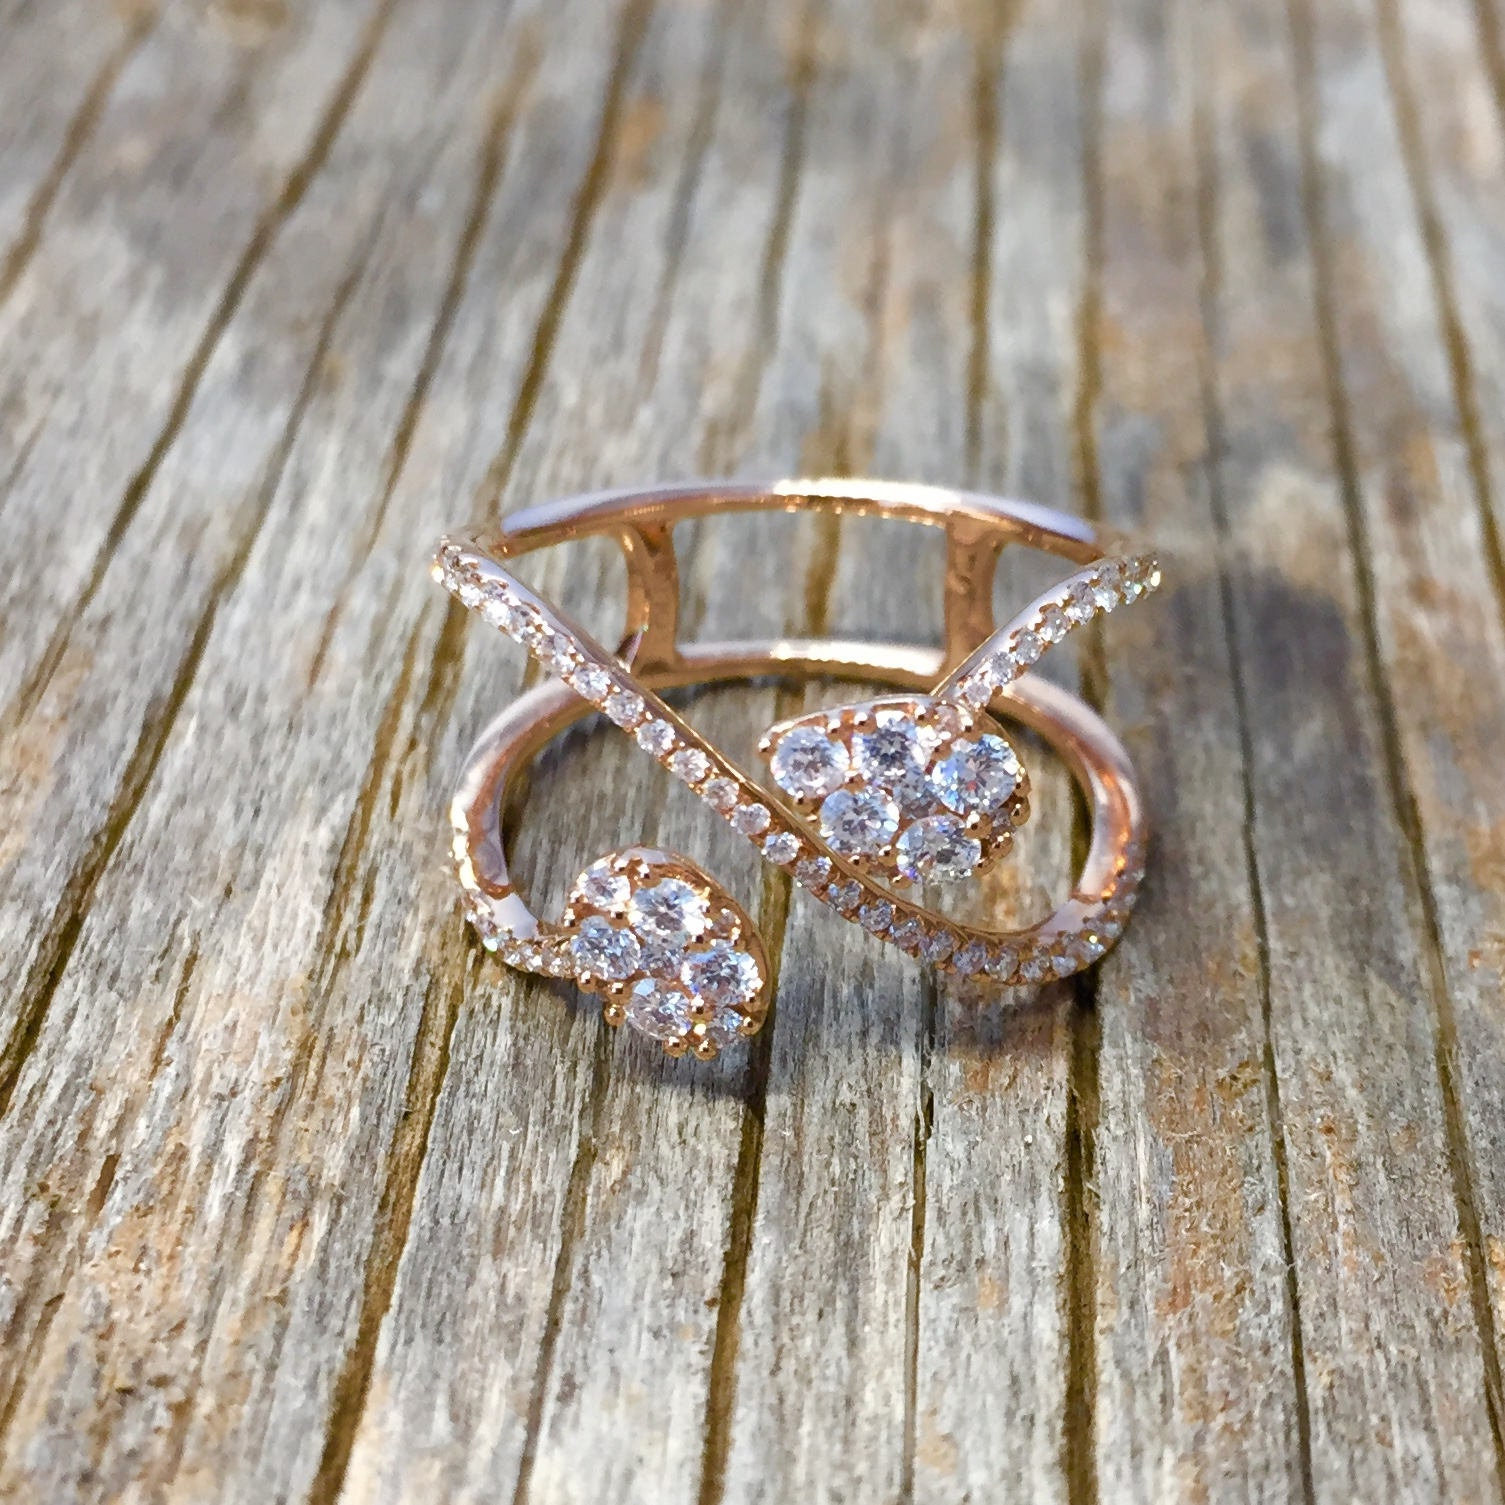 e96698b89de9d Vintage marquise cut engagement ring diamond infinity ring open band rose  gold bridal jewelry for her